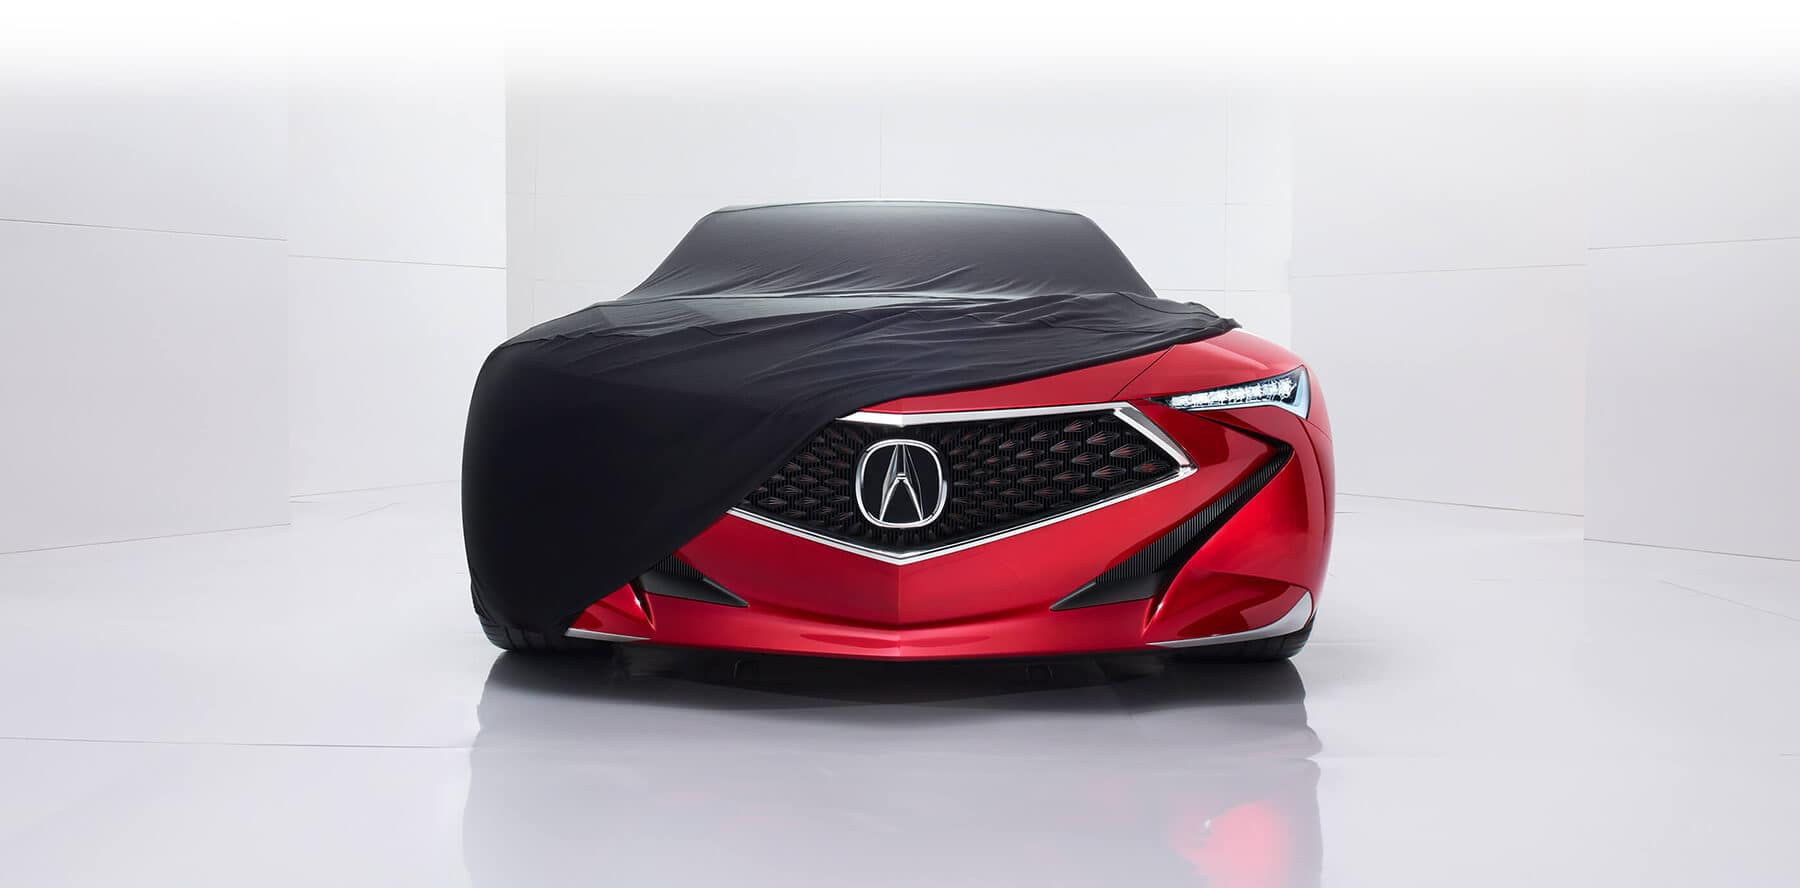 Acura Precision Concept Reveal